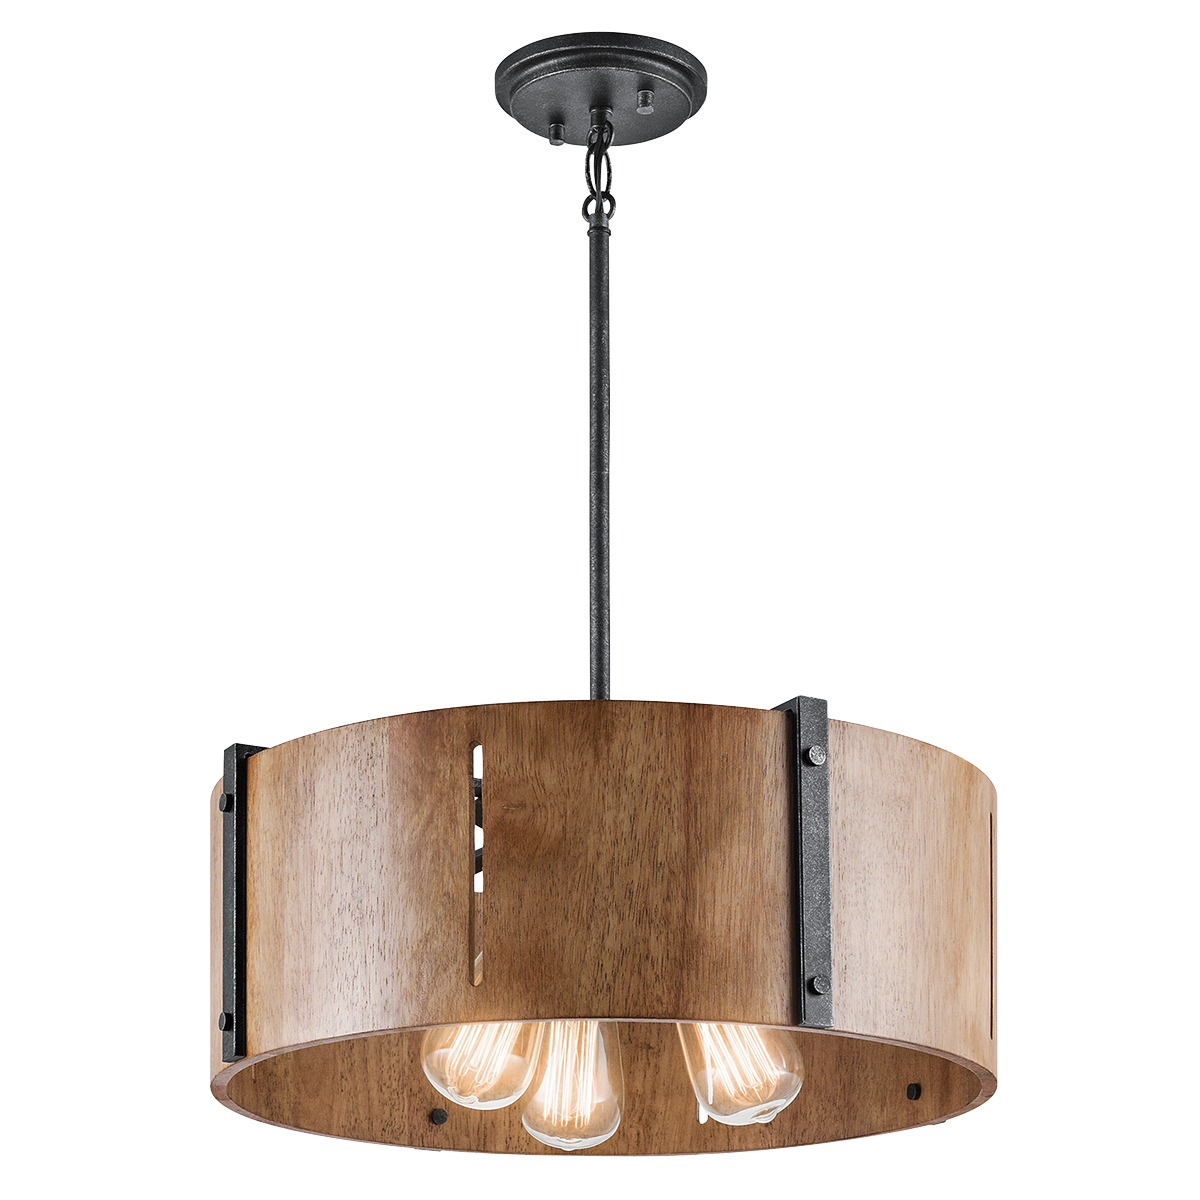 industrial look lighting. Real Wood And Look Lighting Can Have Both An Industrial Feel Or Add Transitional Elements P